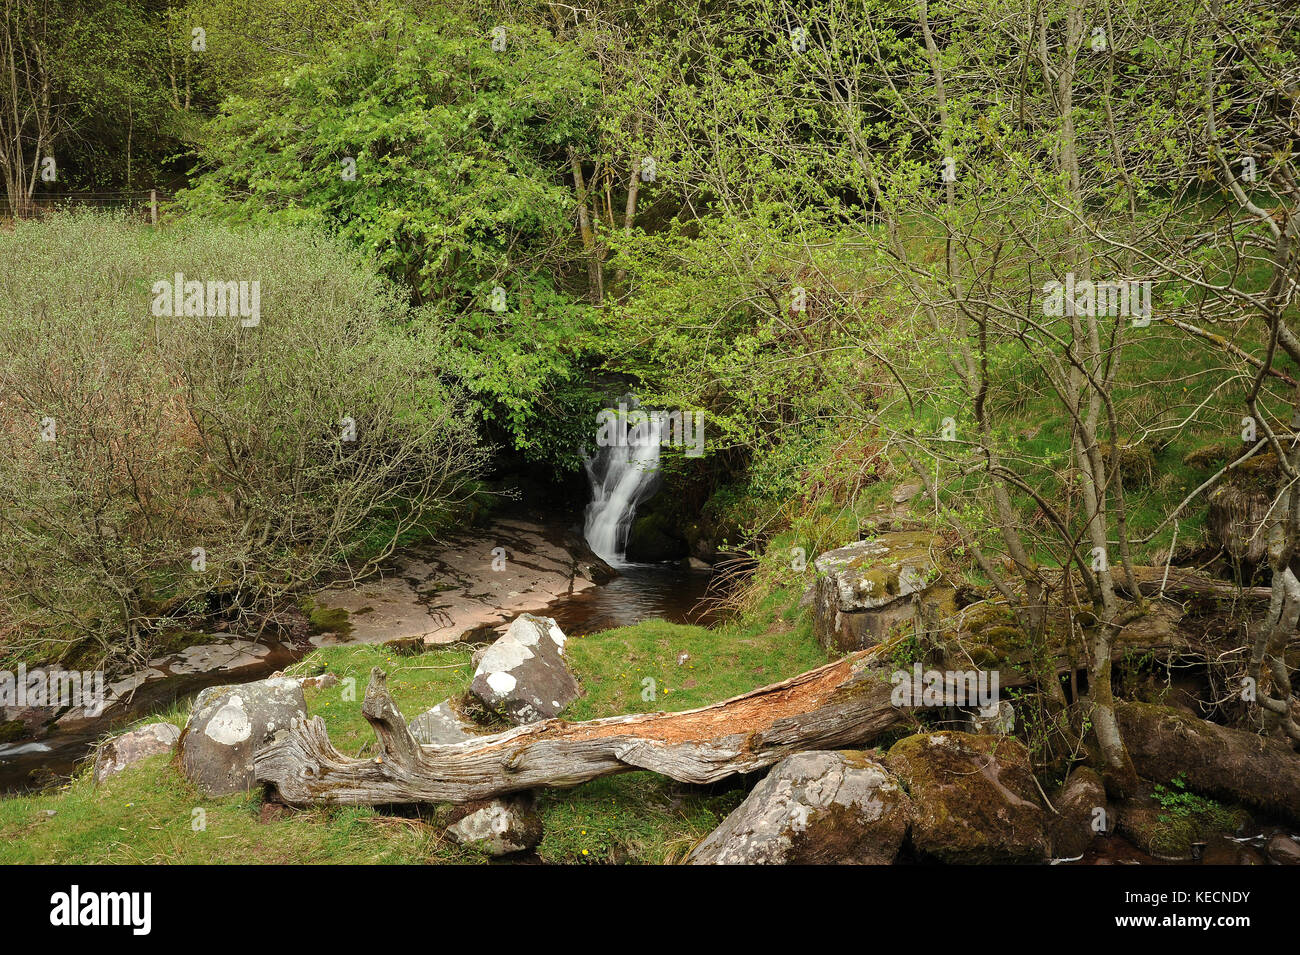 Last waterfall on Nant Bwrefwr. - Stock Image